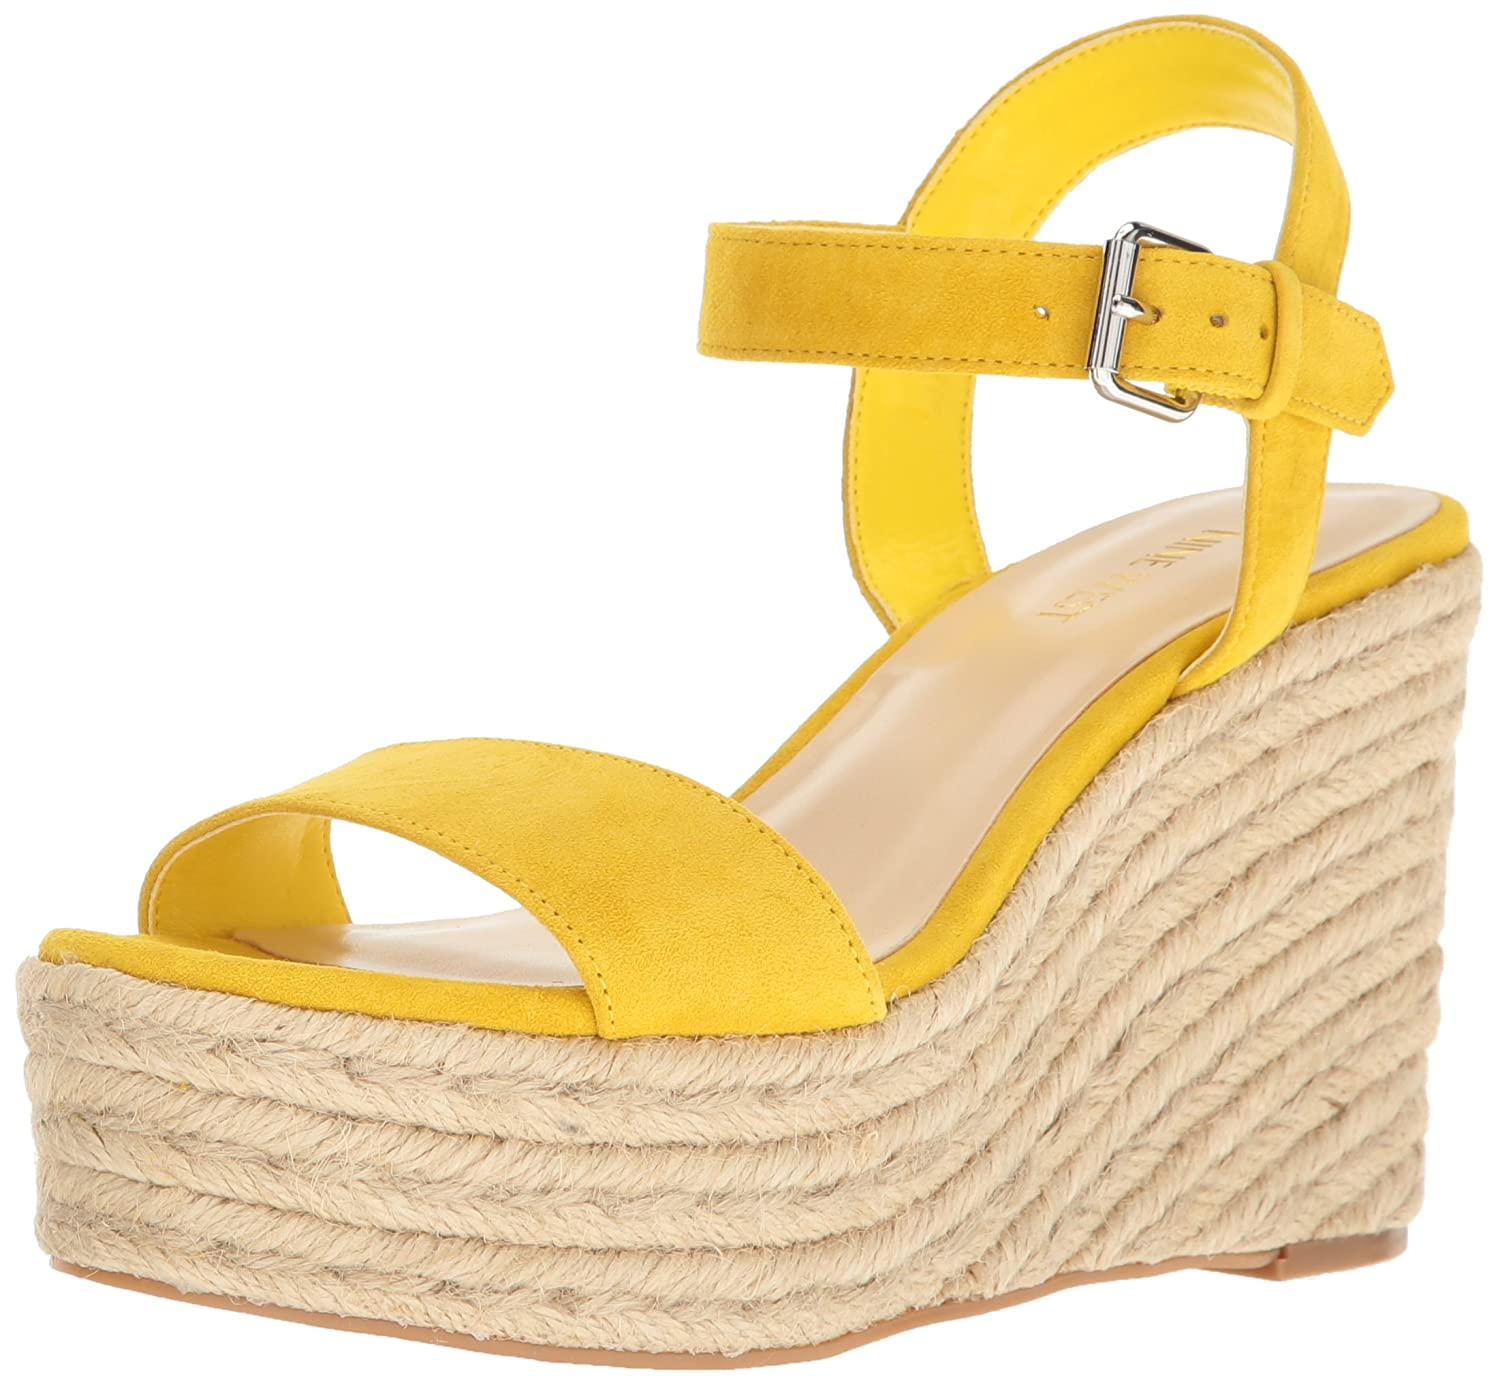 Nine West Women's Doitright Suede Wedge Sandal B01MXXQ943 6 B(M) US|Yellow